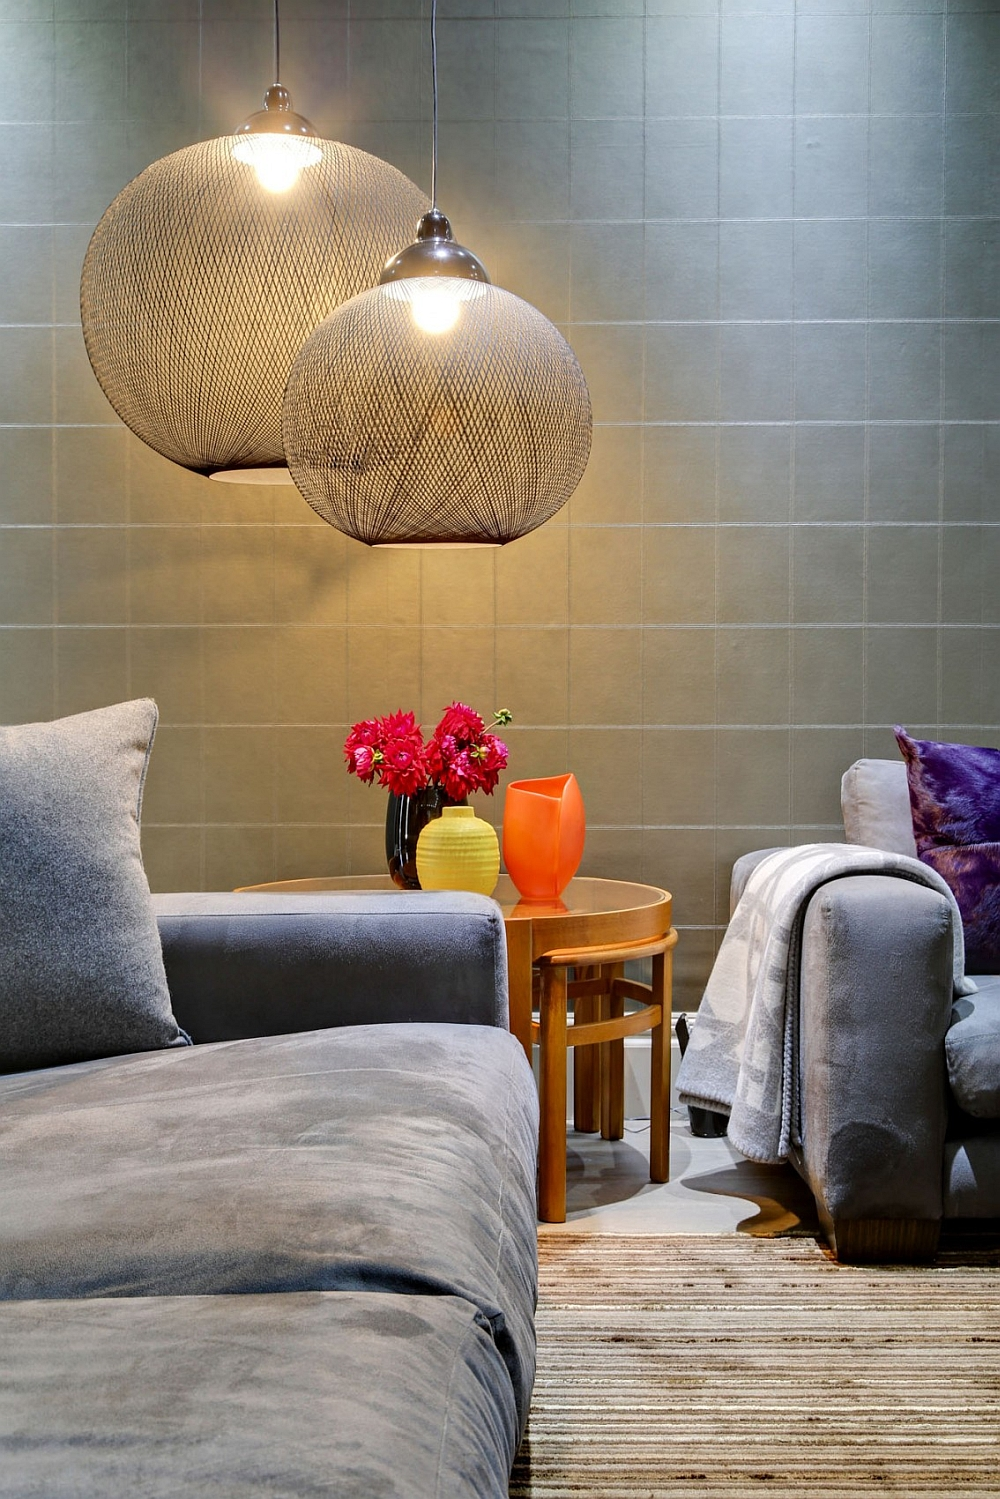 Exclusive London Bachelor Pad Design By Daniel Hopwood